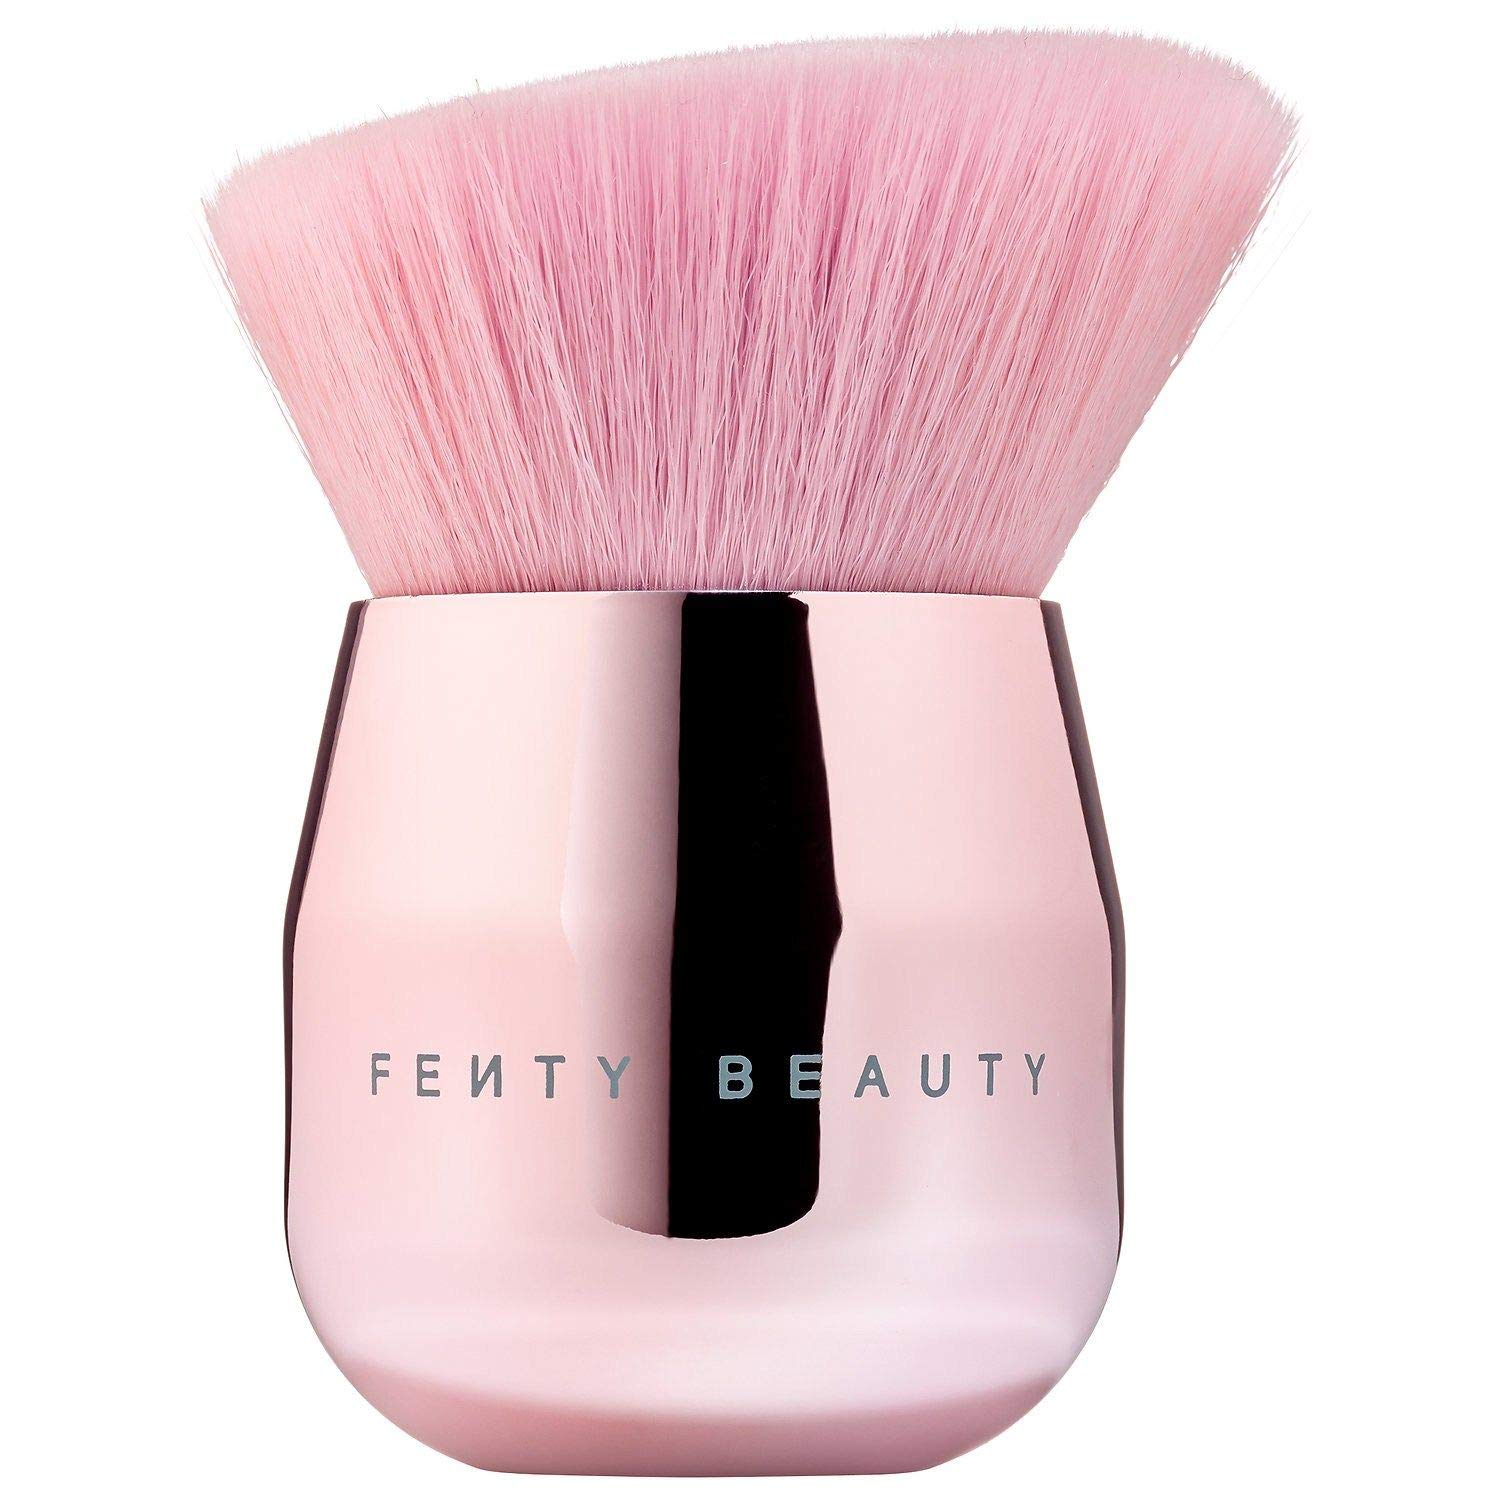 FENTY BEAUTY Face and Body Kabuki Best Cruelty Free Makeup Brush